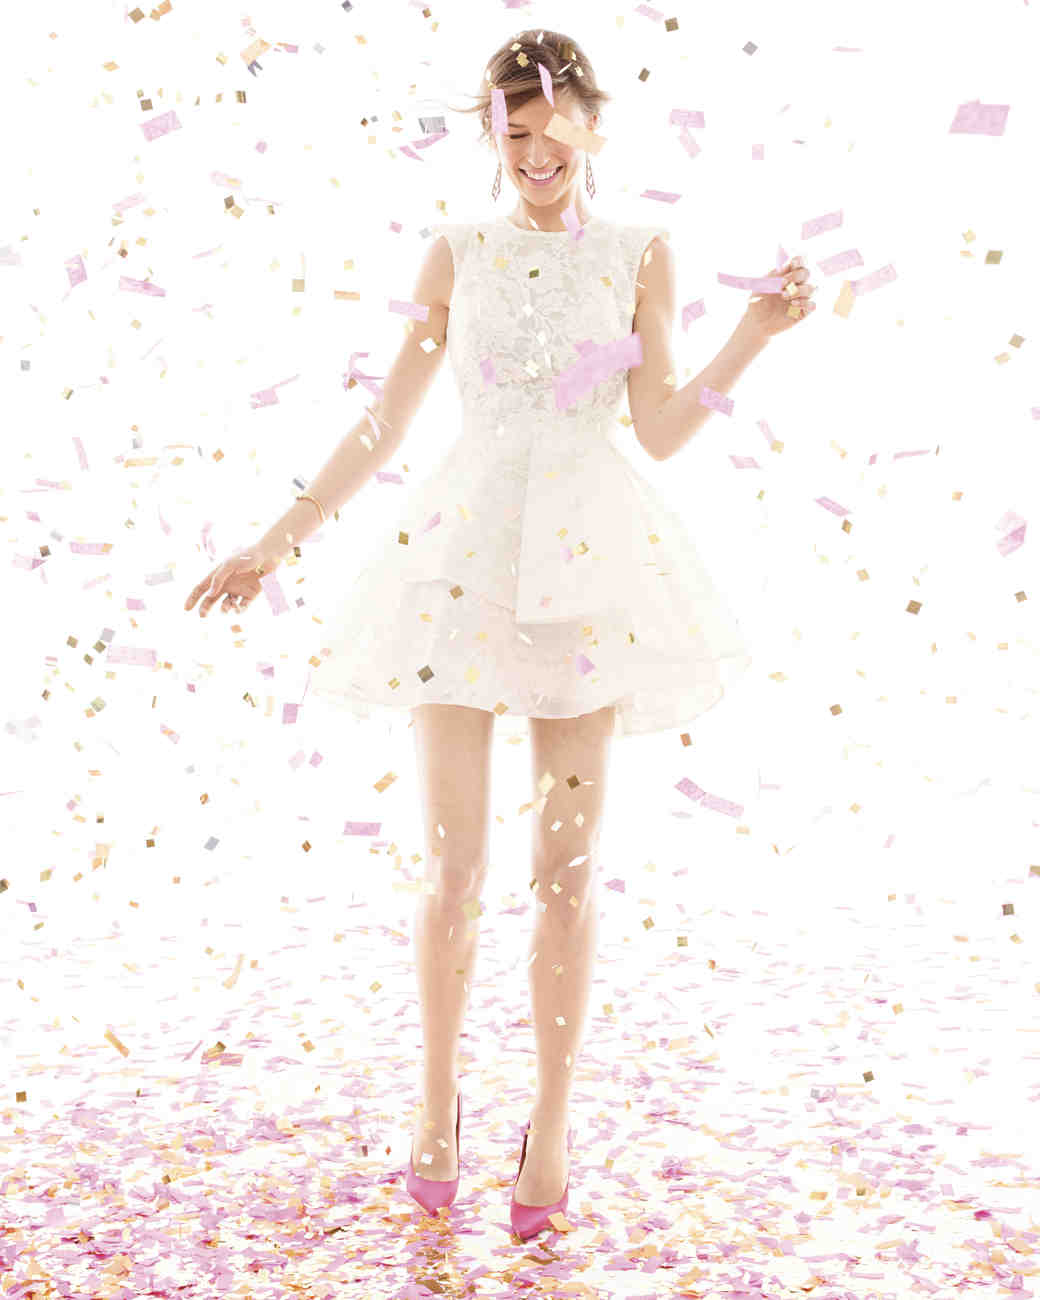 confetti-wedding-dress-215-d111904.jpg